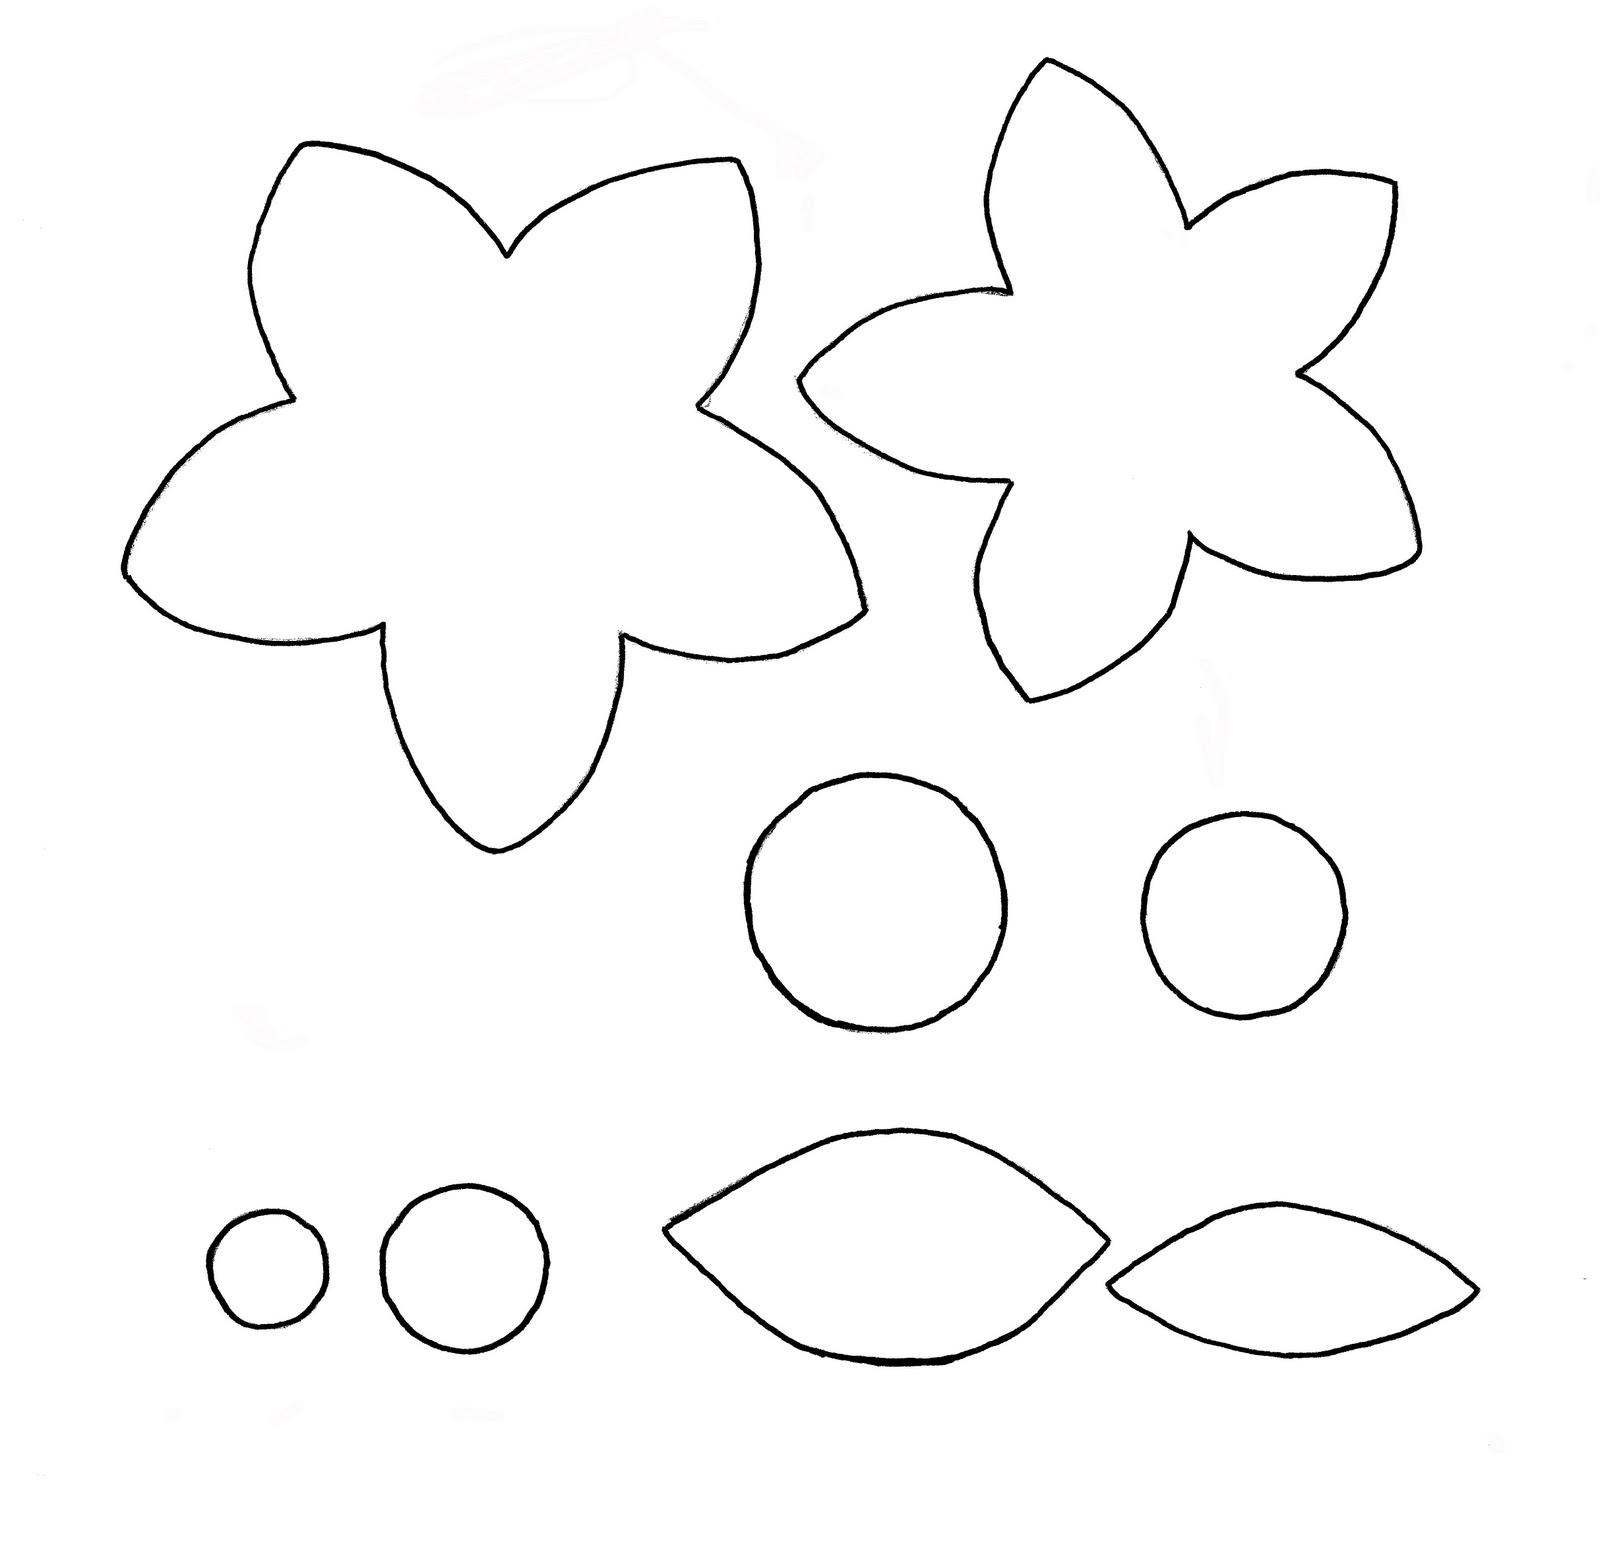 It's just a graphic of Légend Printable Flower Template